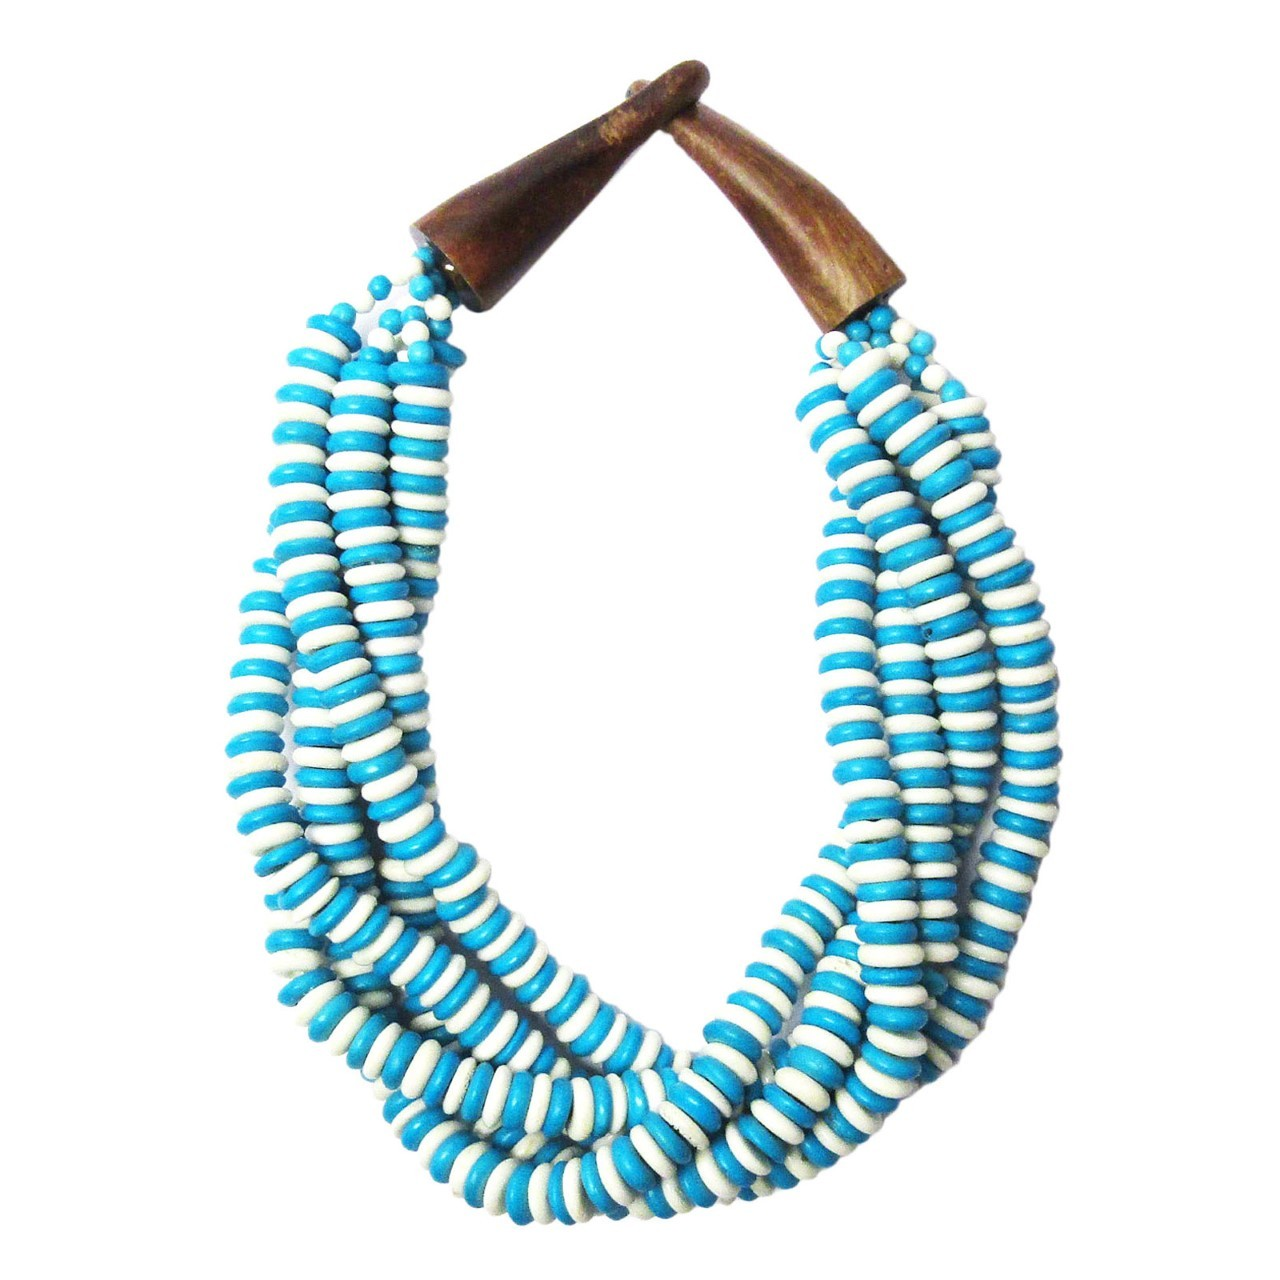 Handcrafted Multi-Strand White Turquoise Genuine Bone Bead Horn Necklace